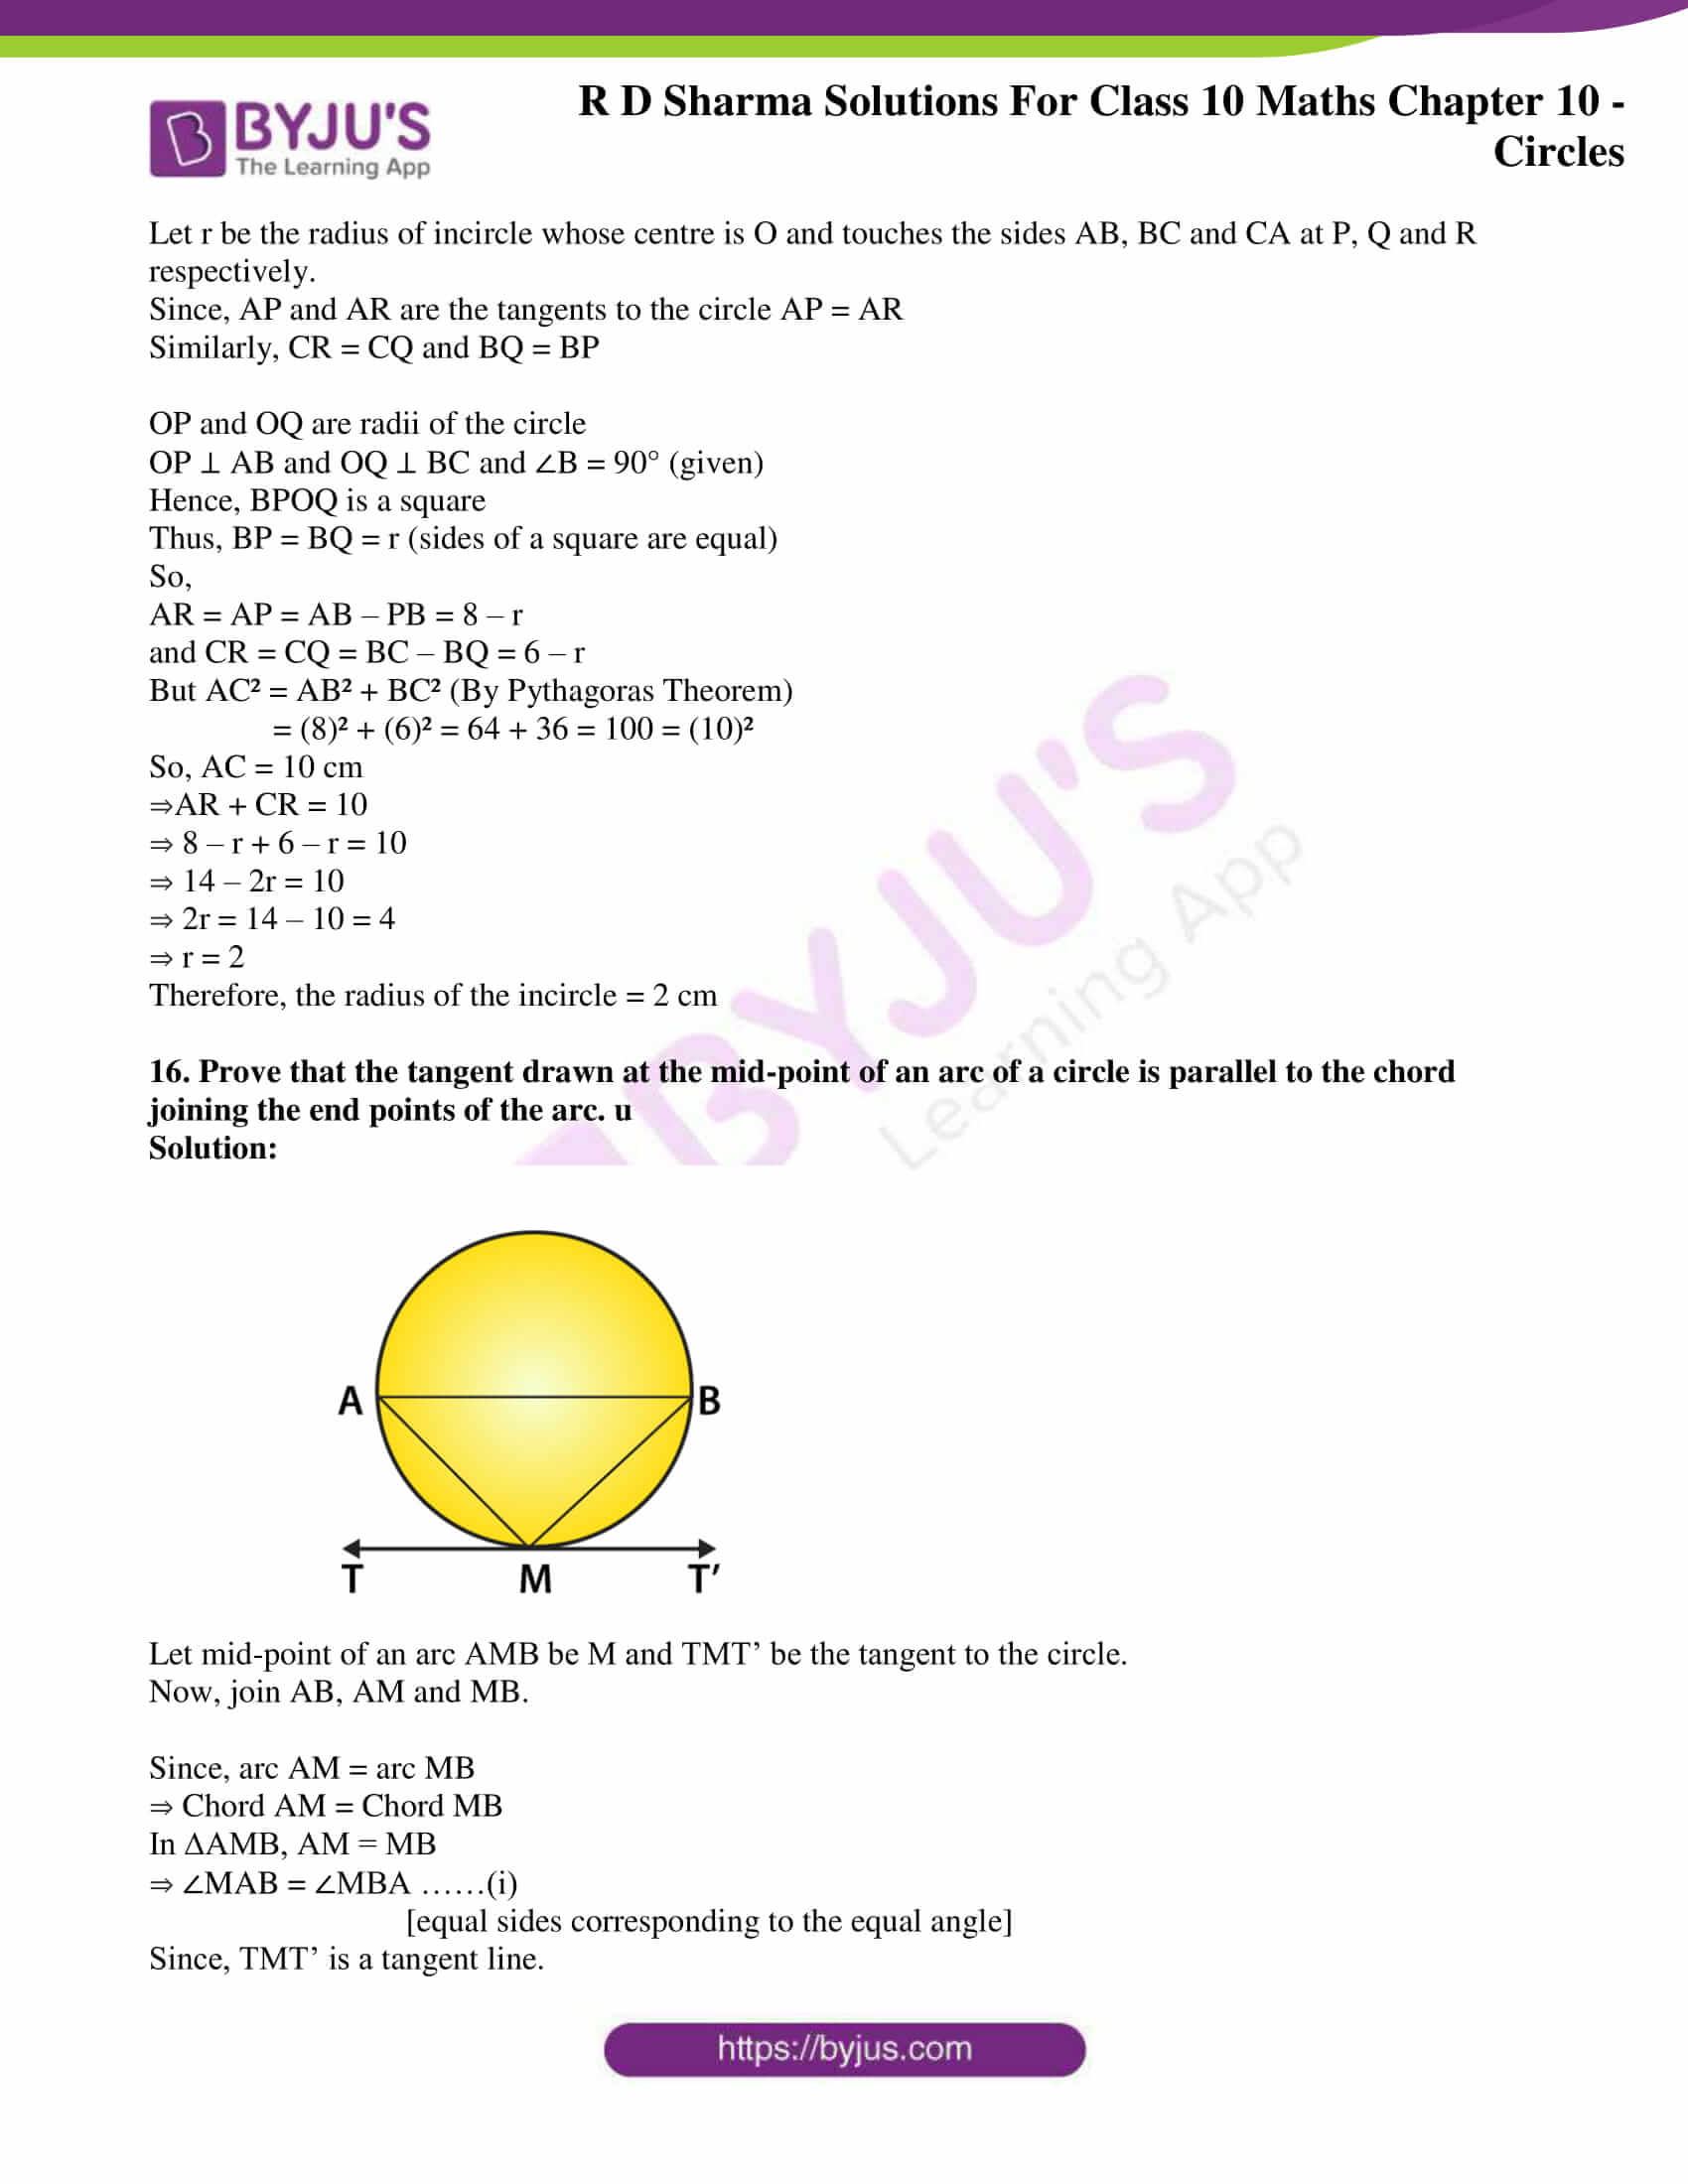 rd sharma class 10 chapter 10 circles solutions exercise 2 11